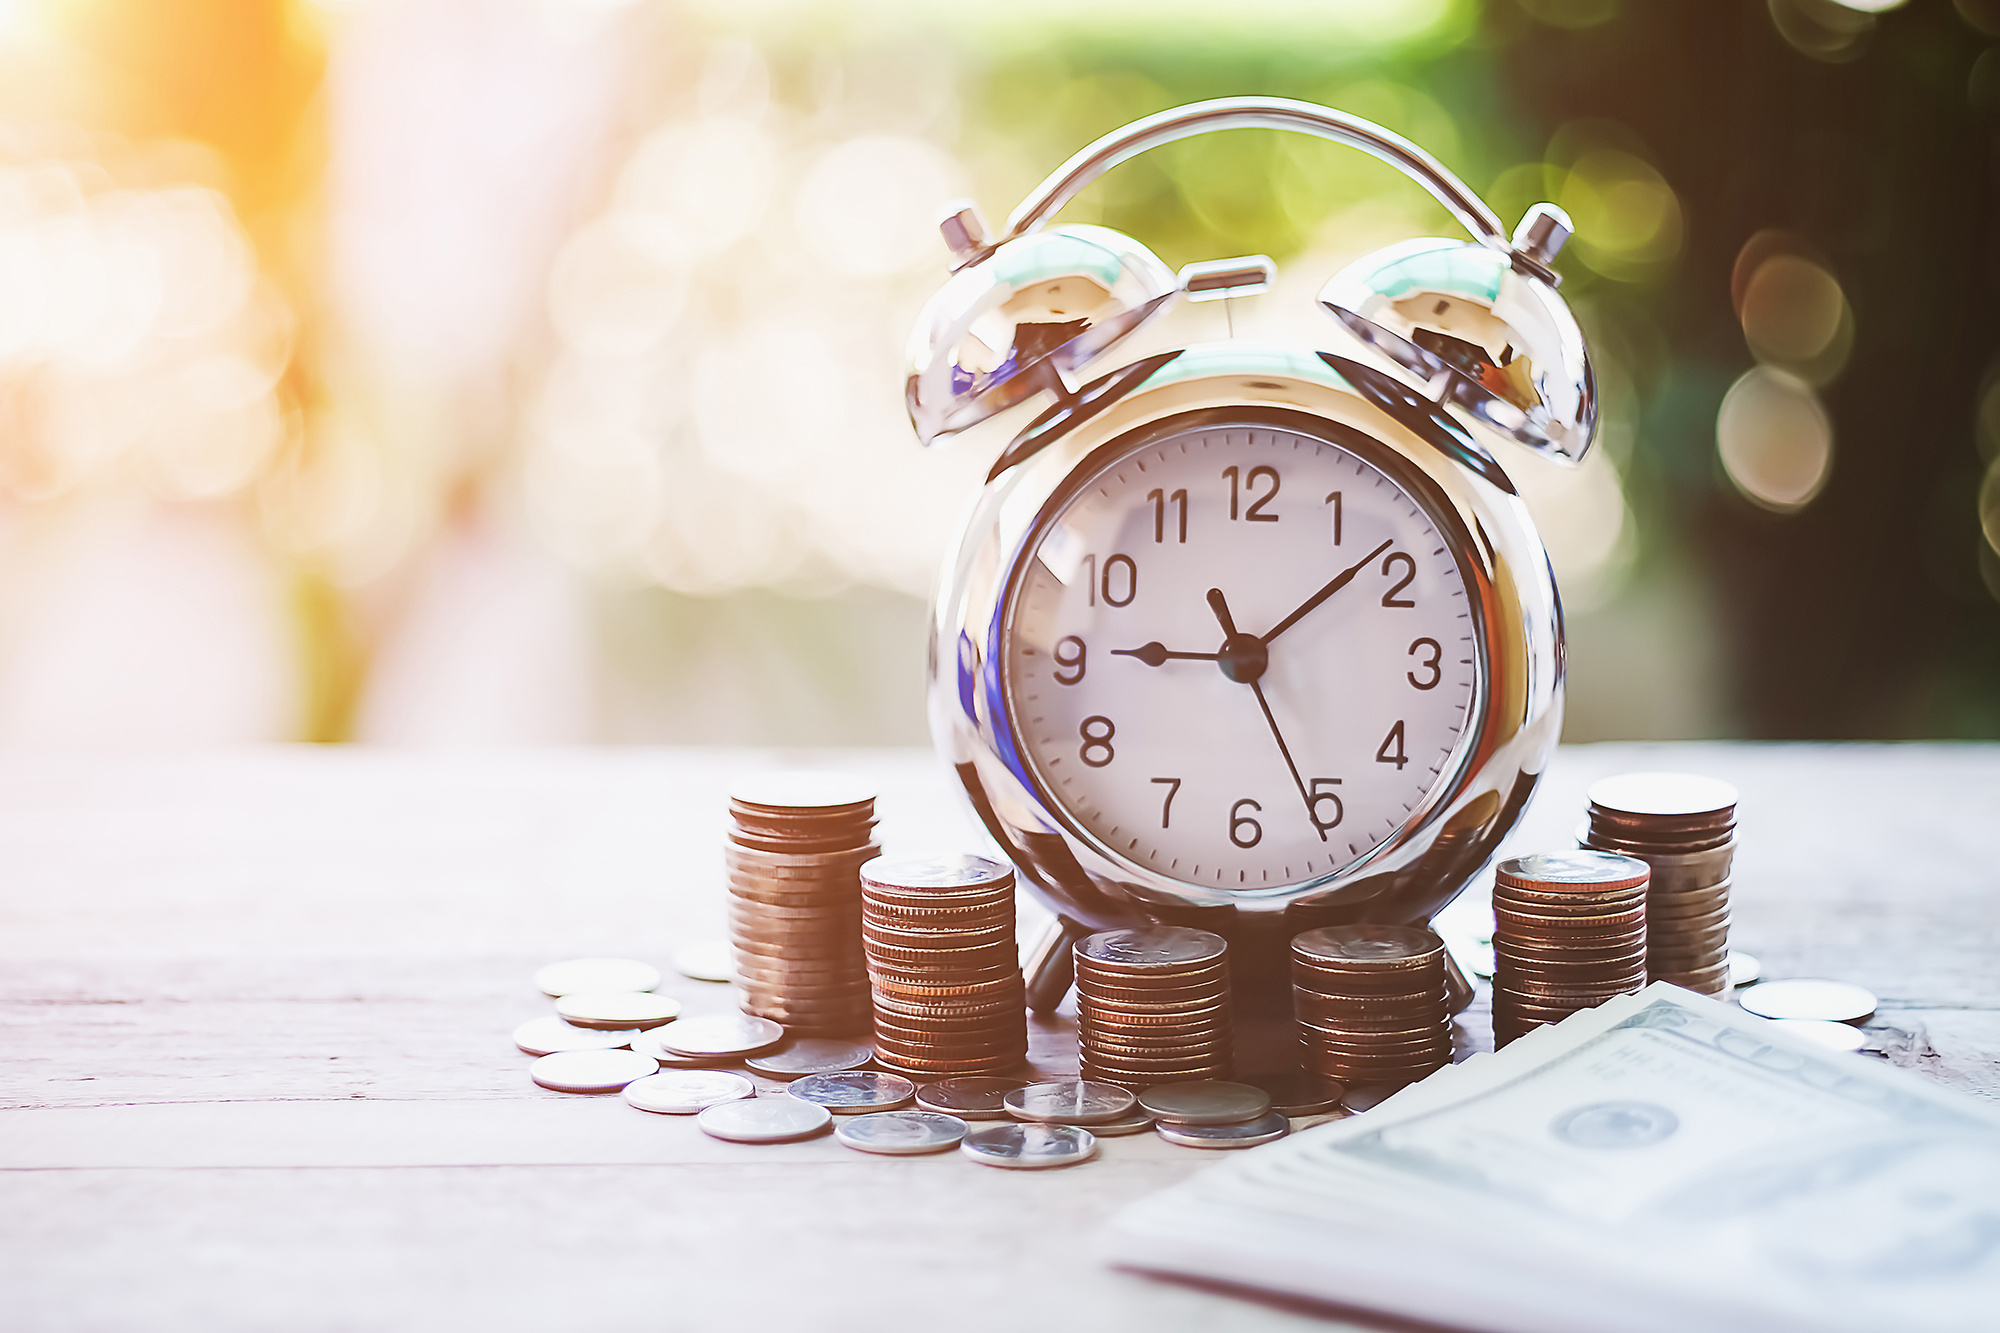 Small clock surrounded by money. (Image: Shutterstock)